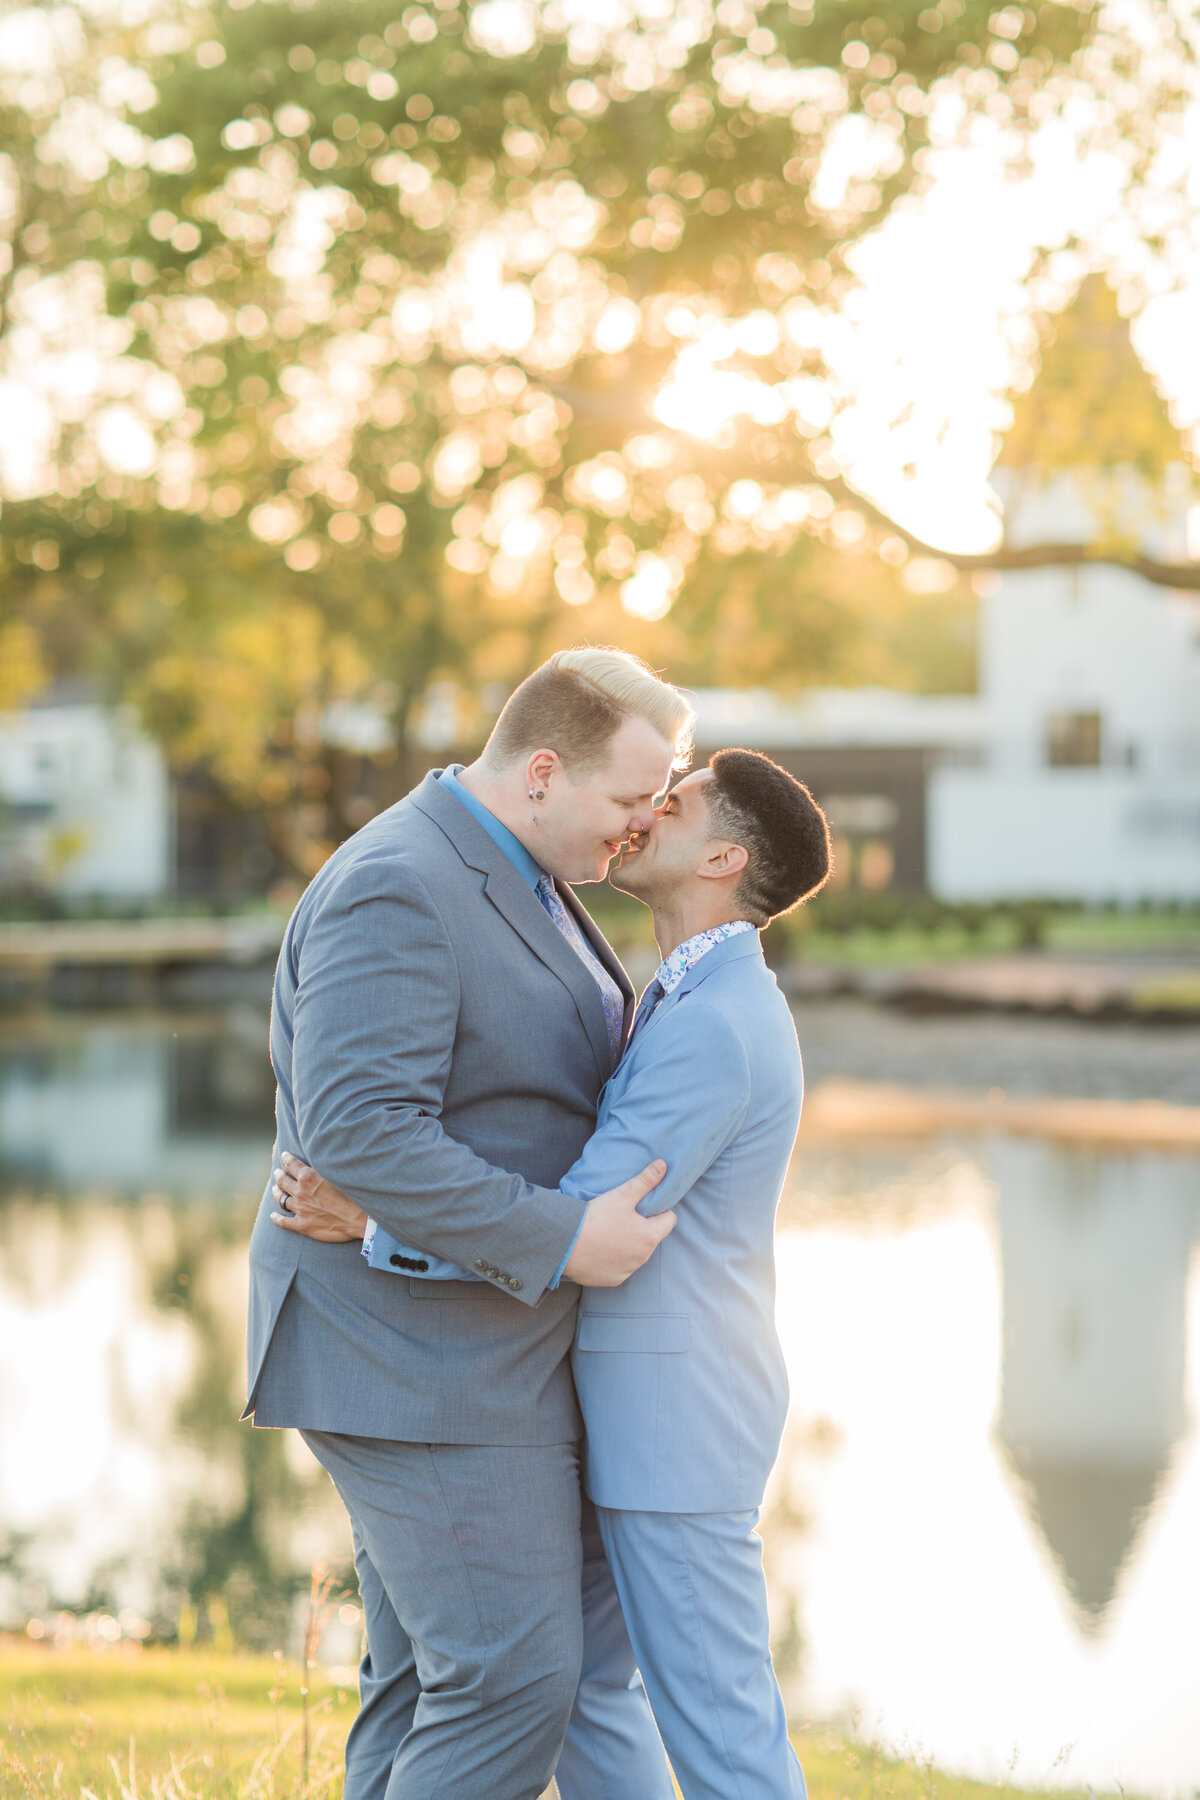 LGBTQ_Engagement_Session_Renault_Winery_Galloway_New_Jersey-74